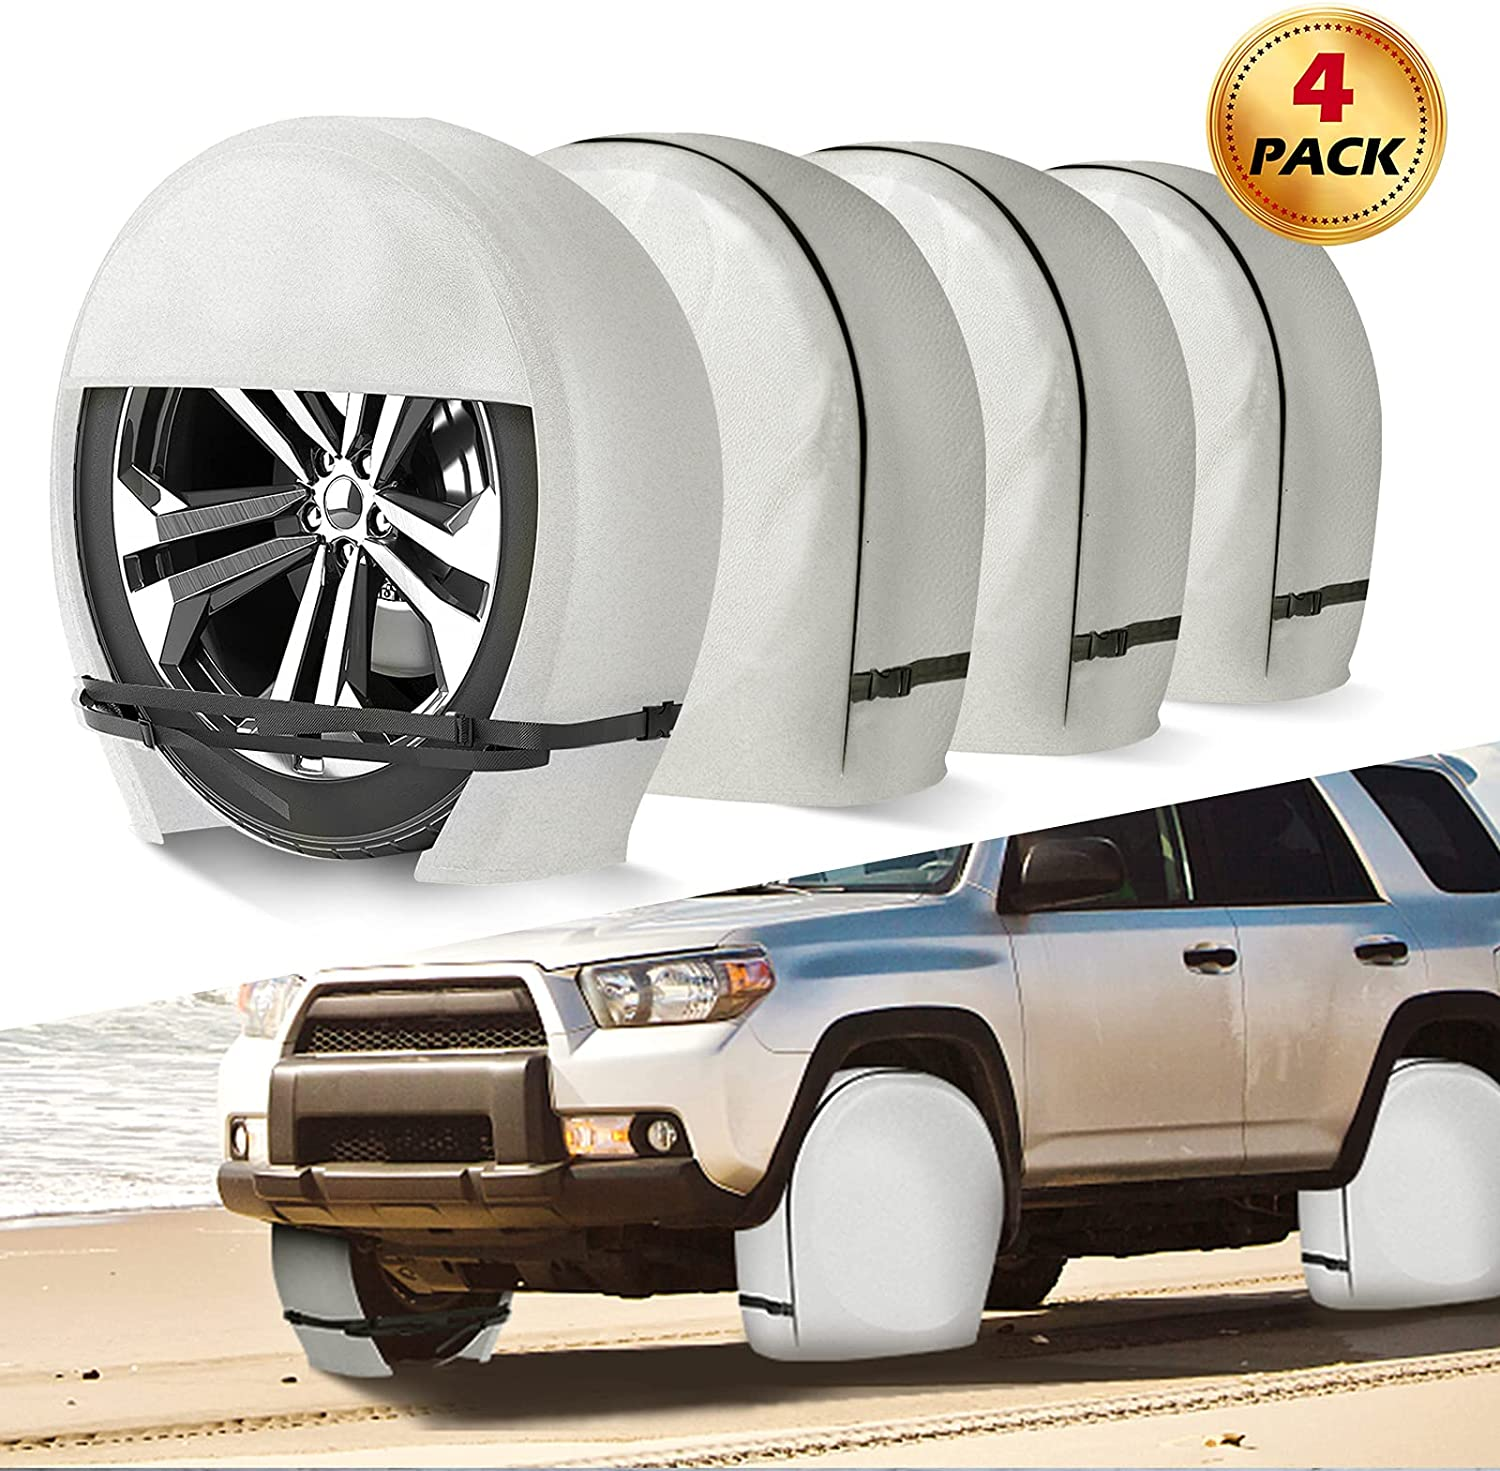 NORTHING RV Tire Covers Set of 4, Upgraded Heavy Duty Vinyl RV Wheel Covers Tire Protectors for Trailer, Camper, Truck, SUV, Motorhome, Fits Tire Diameters 26